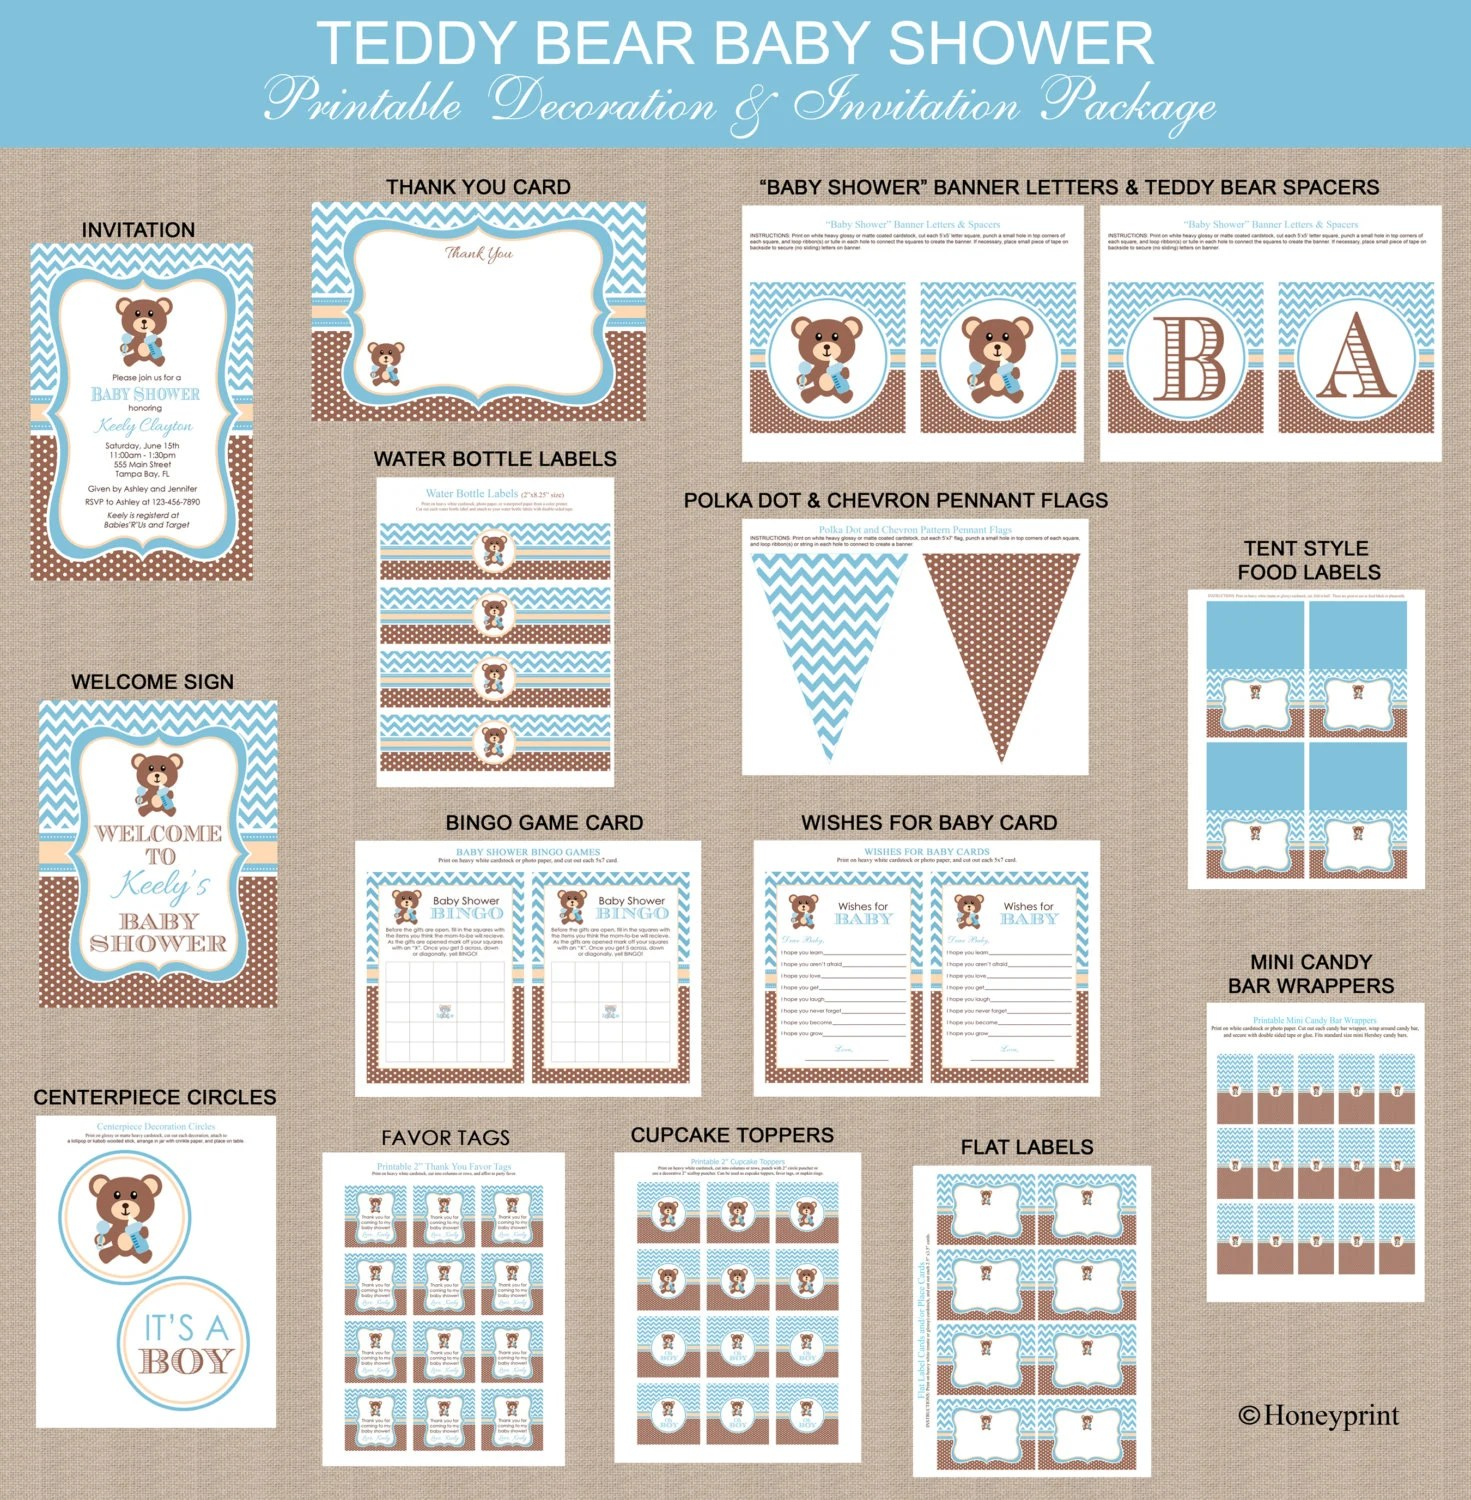 Teddy Bear Baby Shower Printables Package Printable Teddy